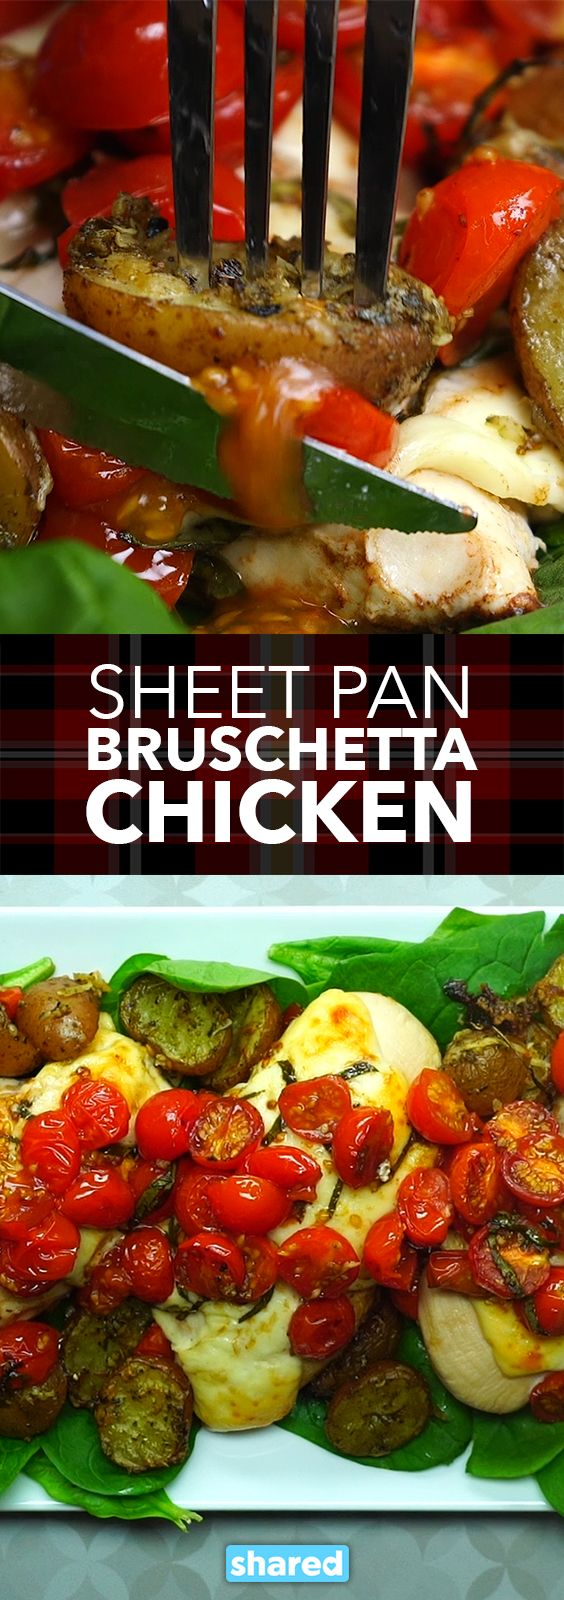 Sheet Pan Bruschetta Chicken - When I discovered this recipe for Sheet Pan Bruschetta Chicken, I realized that cooking a delicious meal is possible anytime! Seriously, it doesn't get much easier than this healthy chicken dish - and the flavor? Wow! You'll love this.